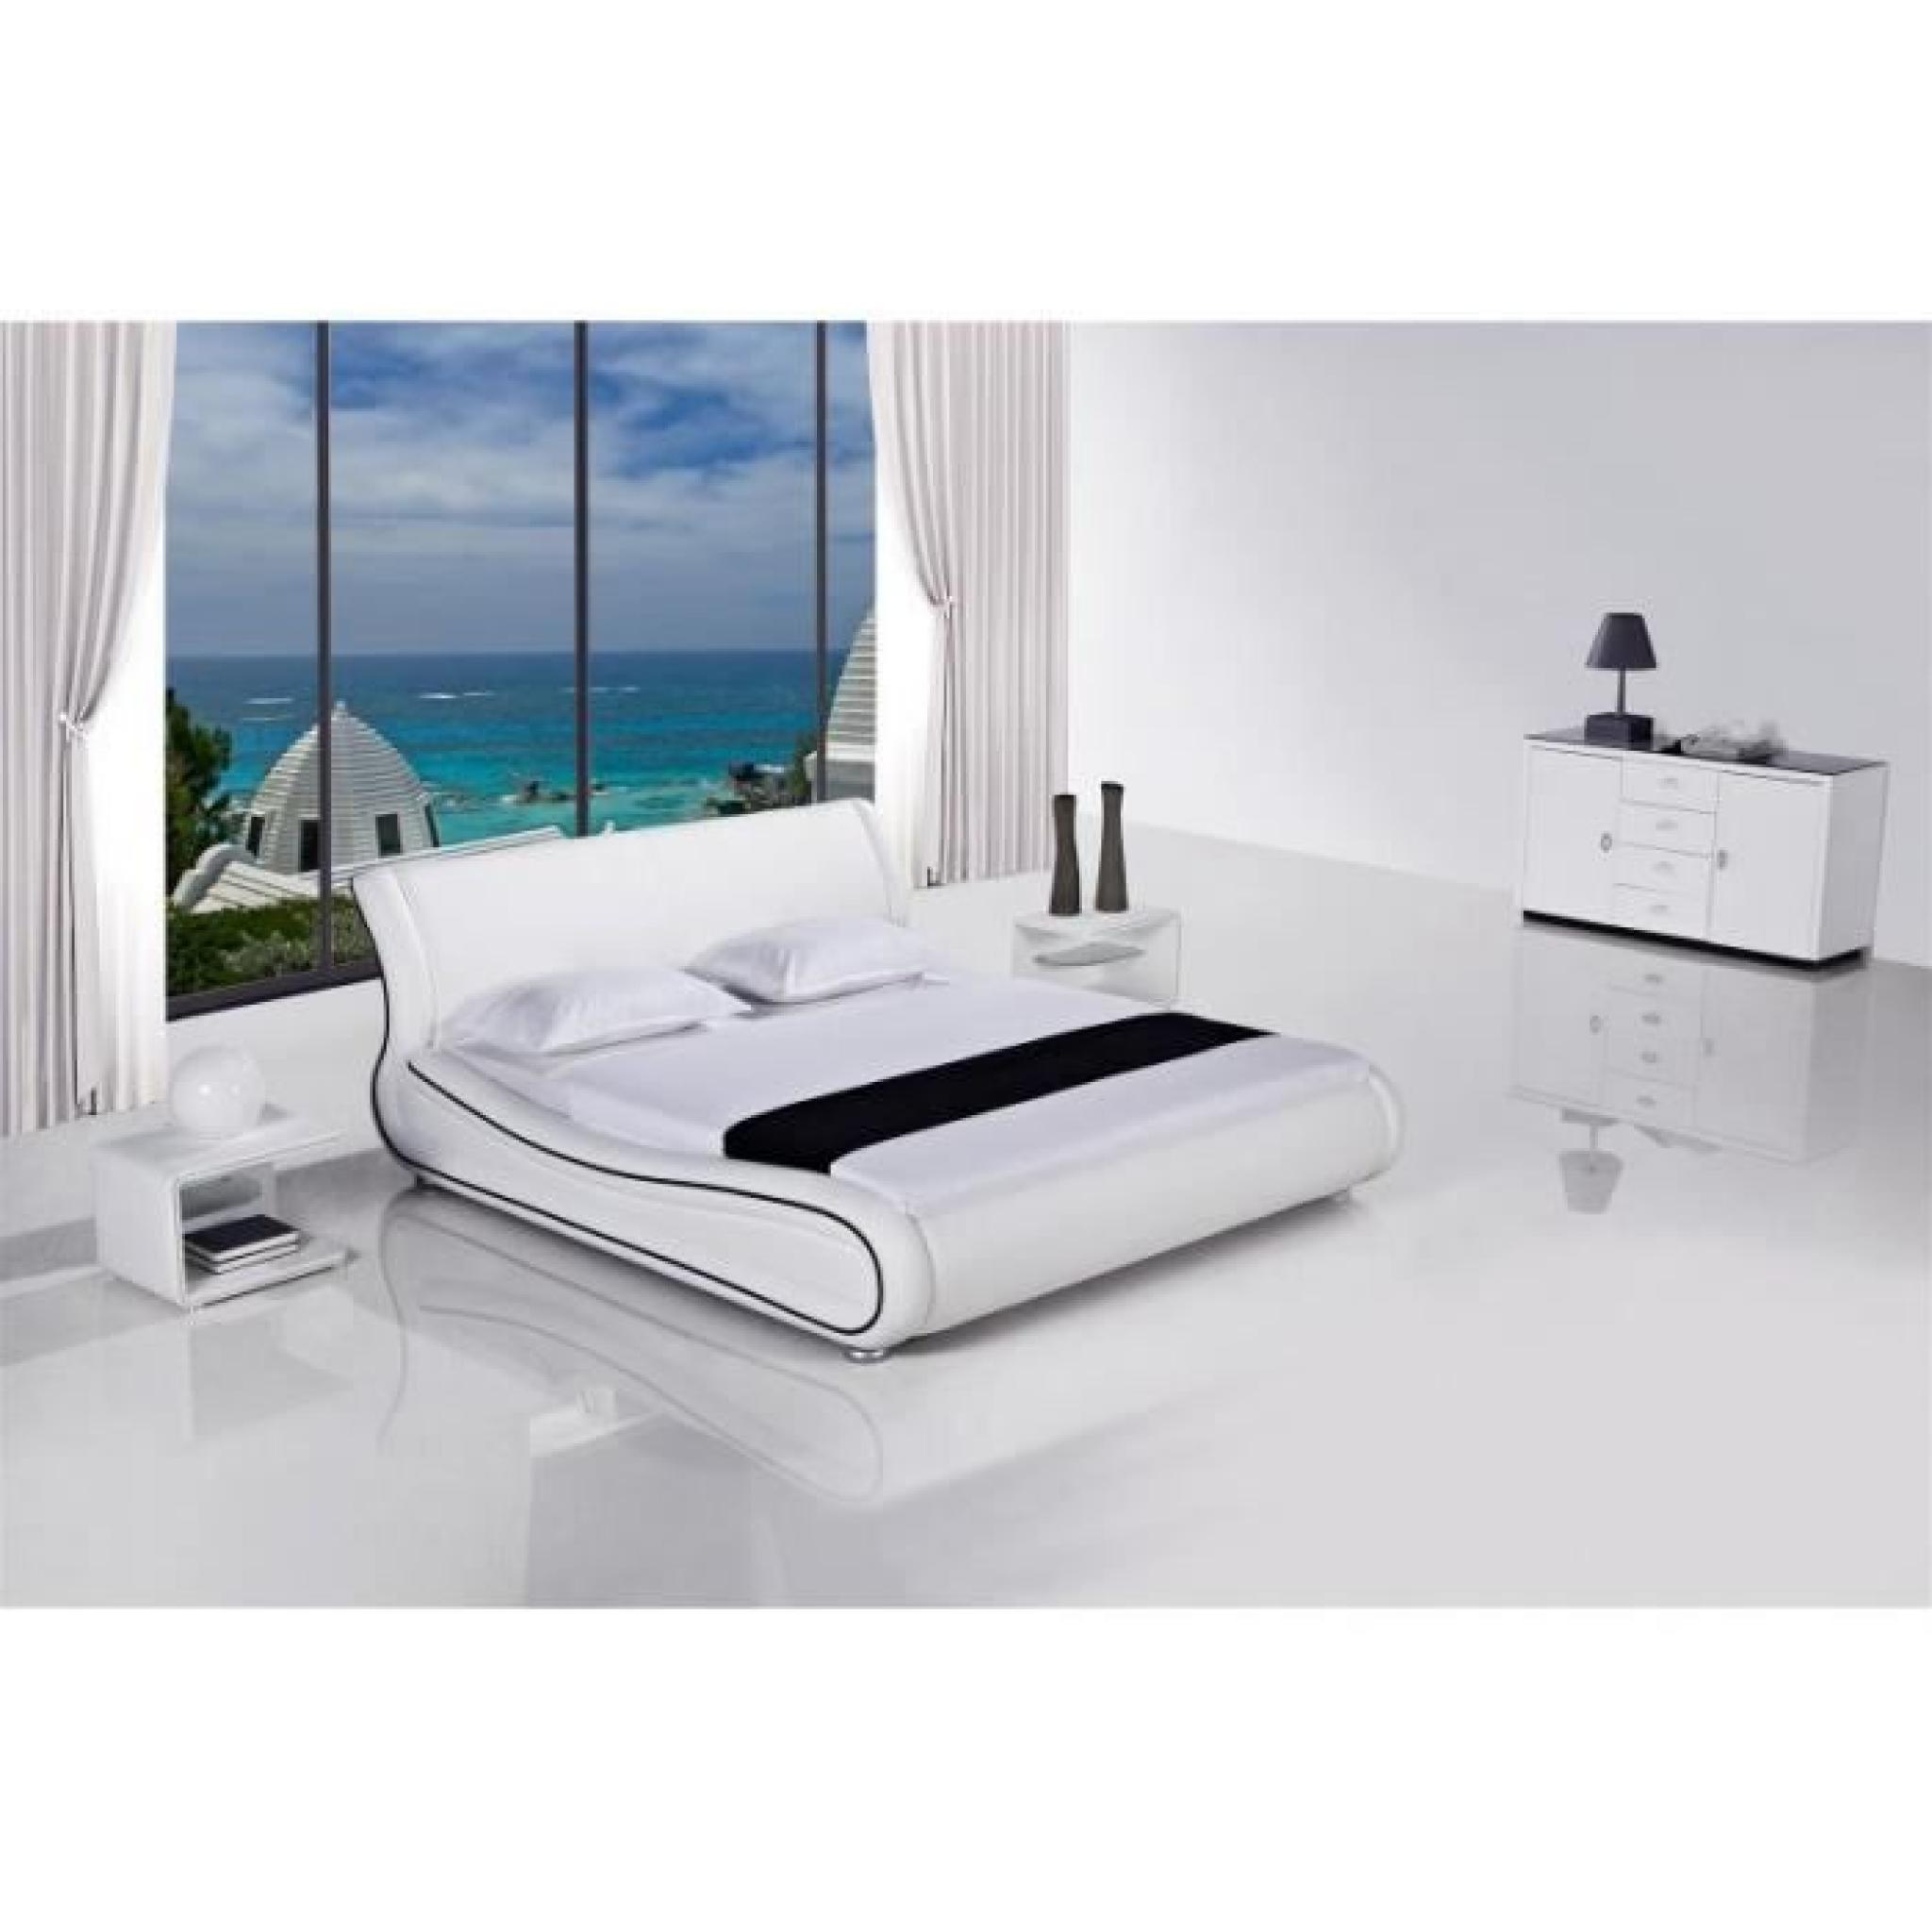 justhome clip blanc lit rembourr en cuir cologique taille 160 x 200 cm achat vente lit pas. Black Bedroom Furniture Sets. Home Design Ideas